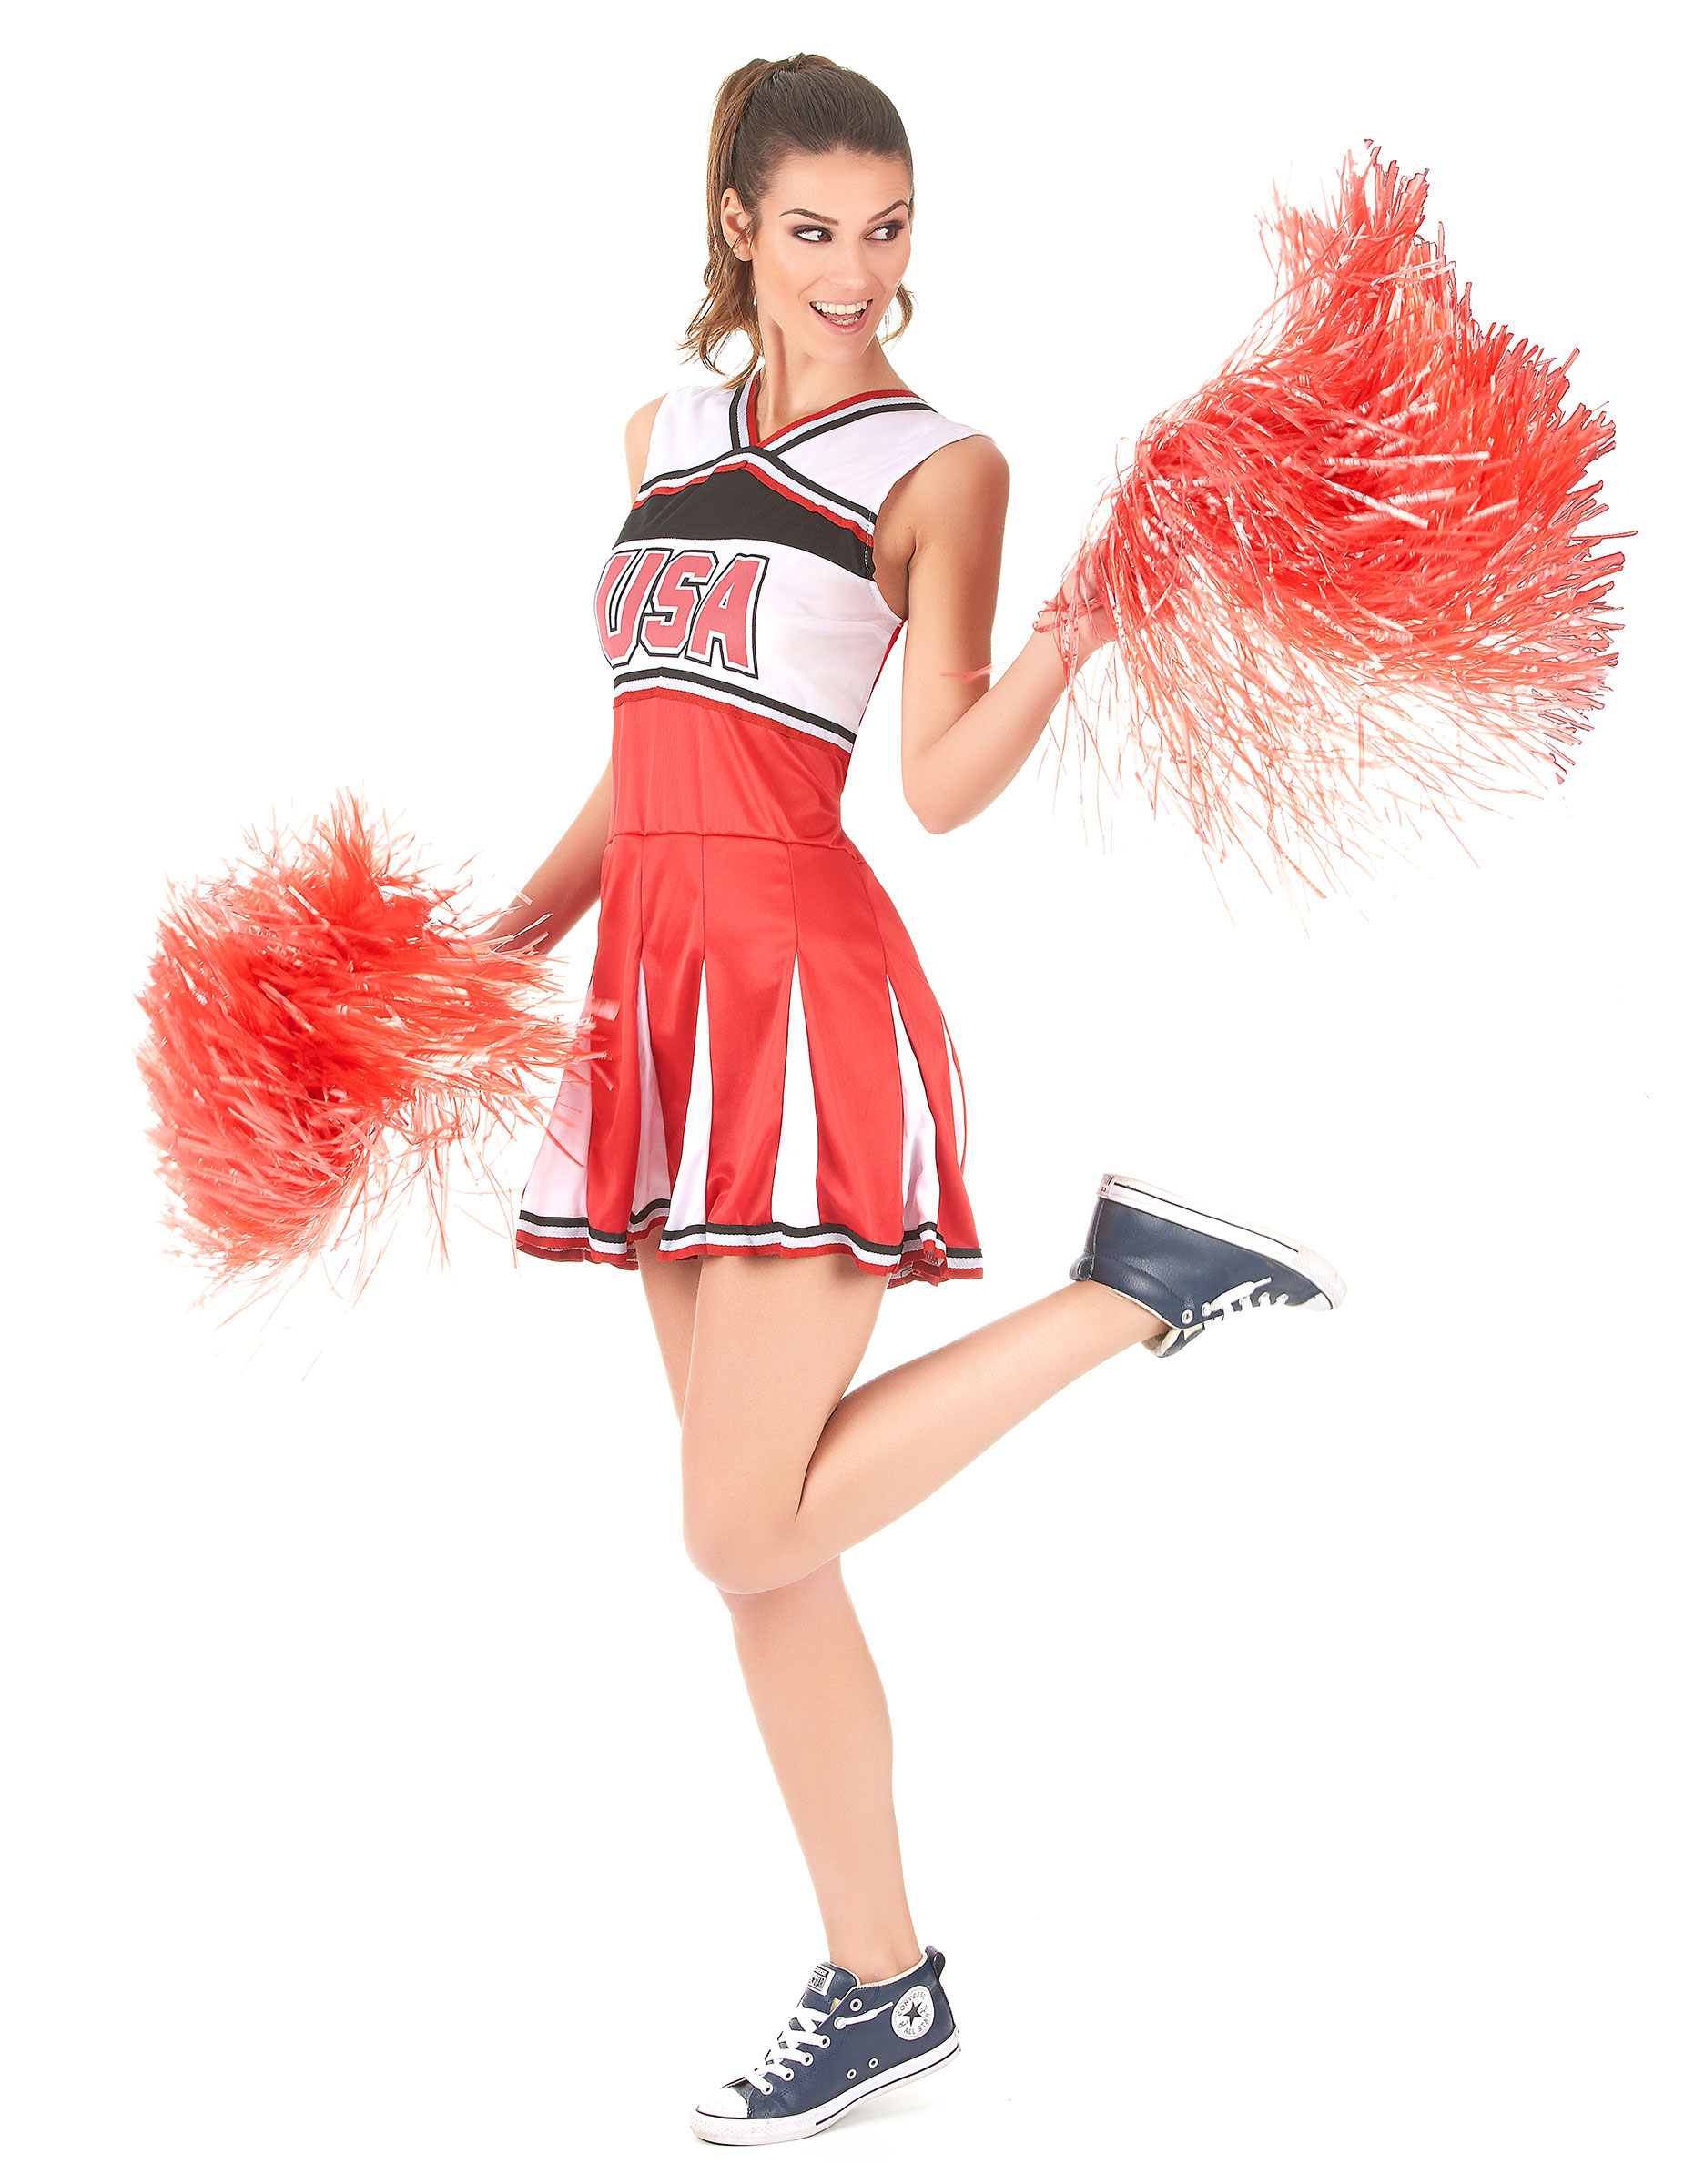 Sportliches Cheerleader Kostum Fur Damen